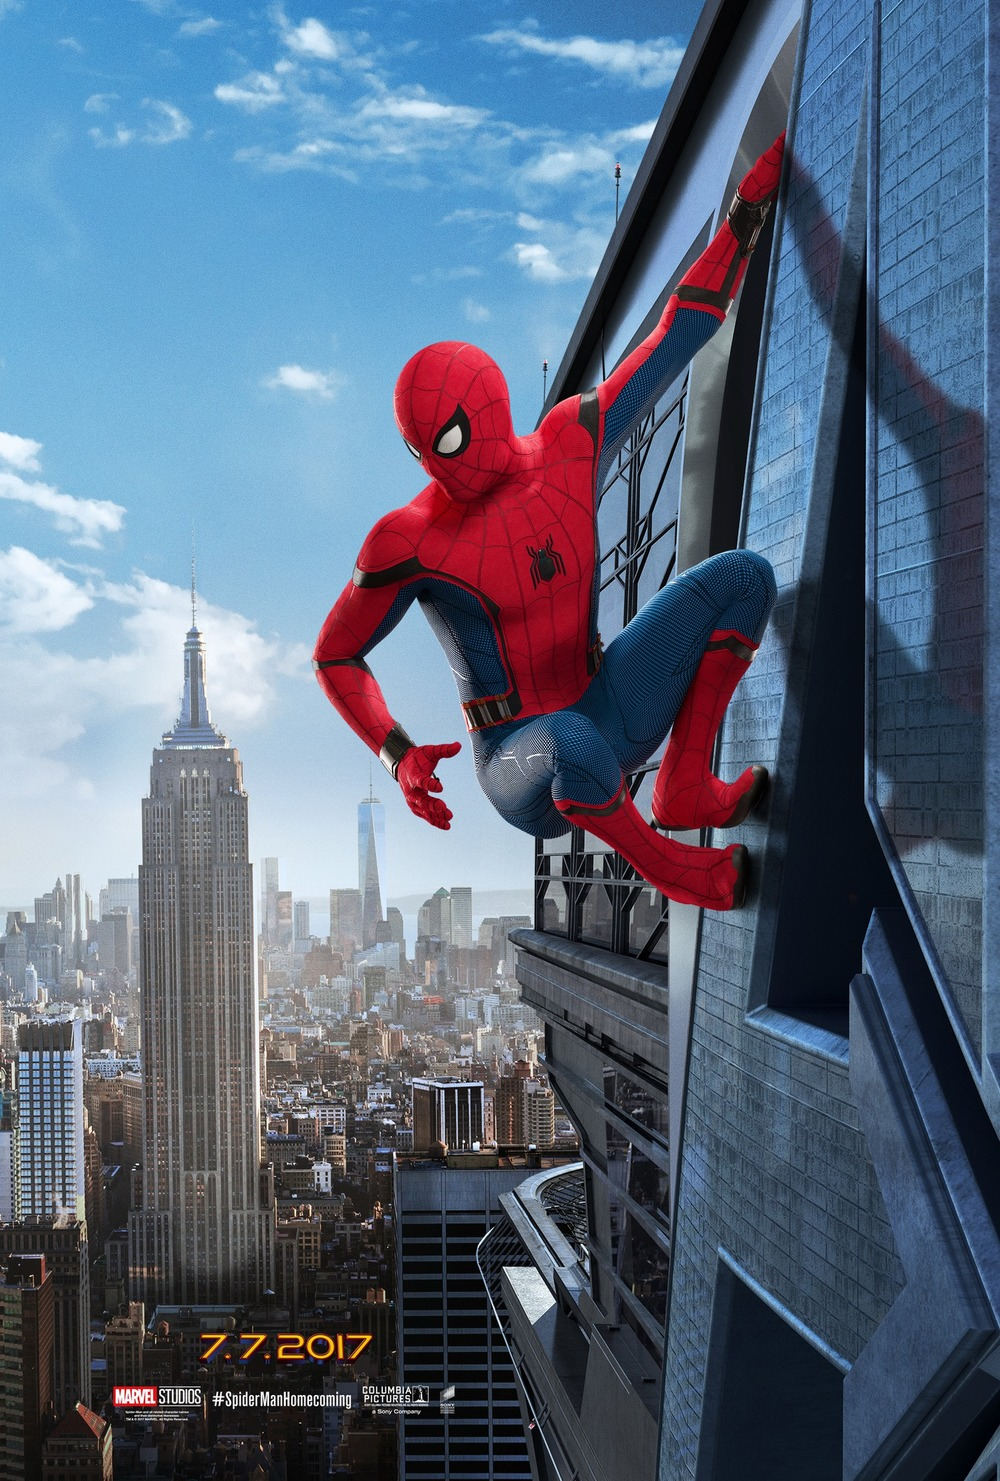 Spider-Man: Homecoming DVD Release Date October 17, 2017